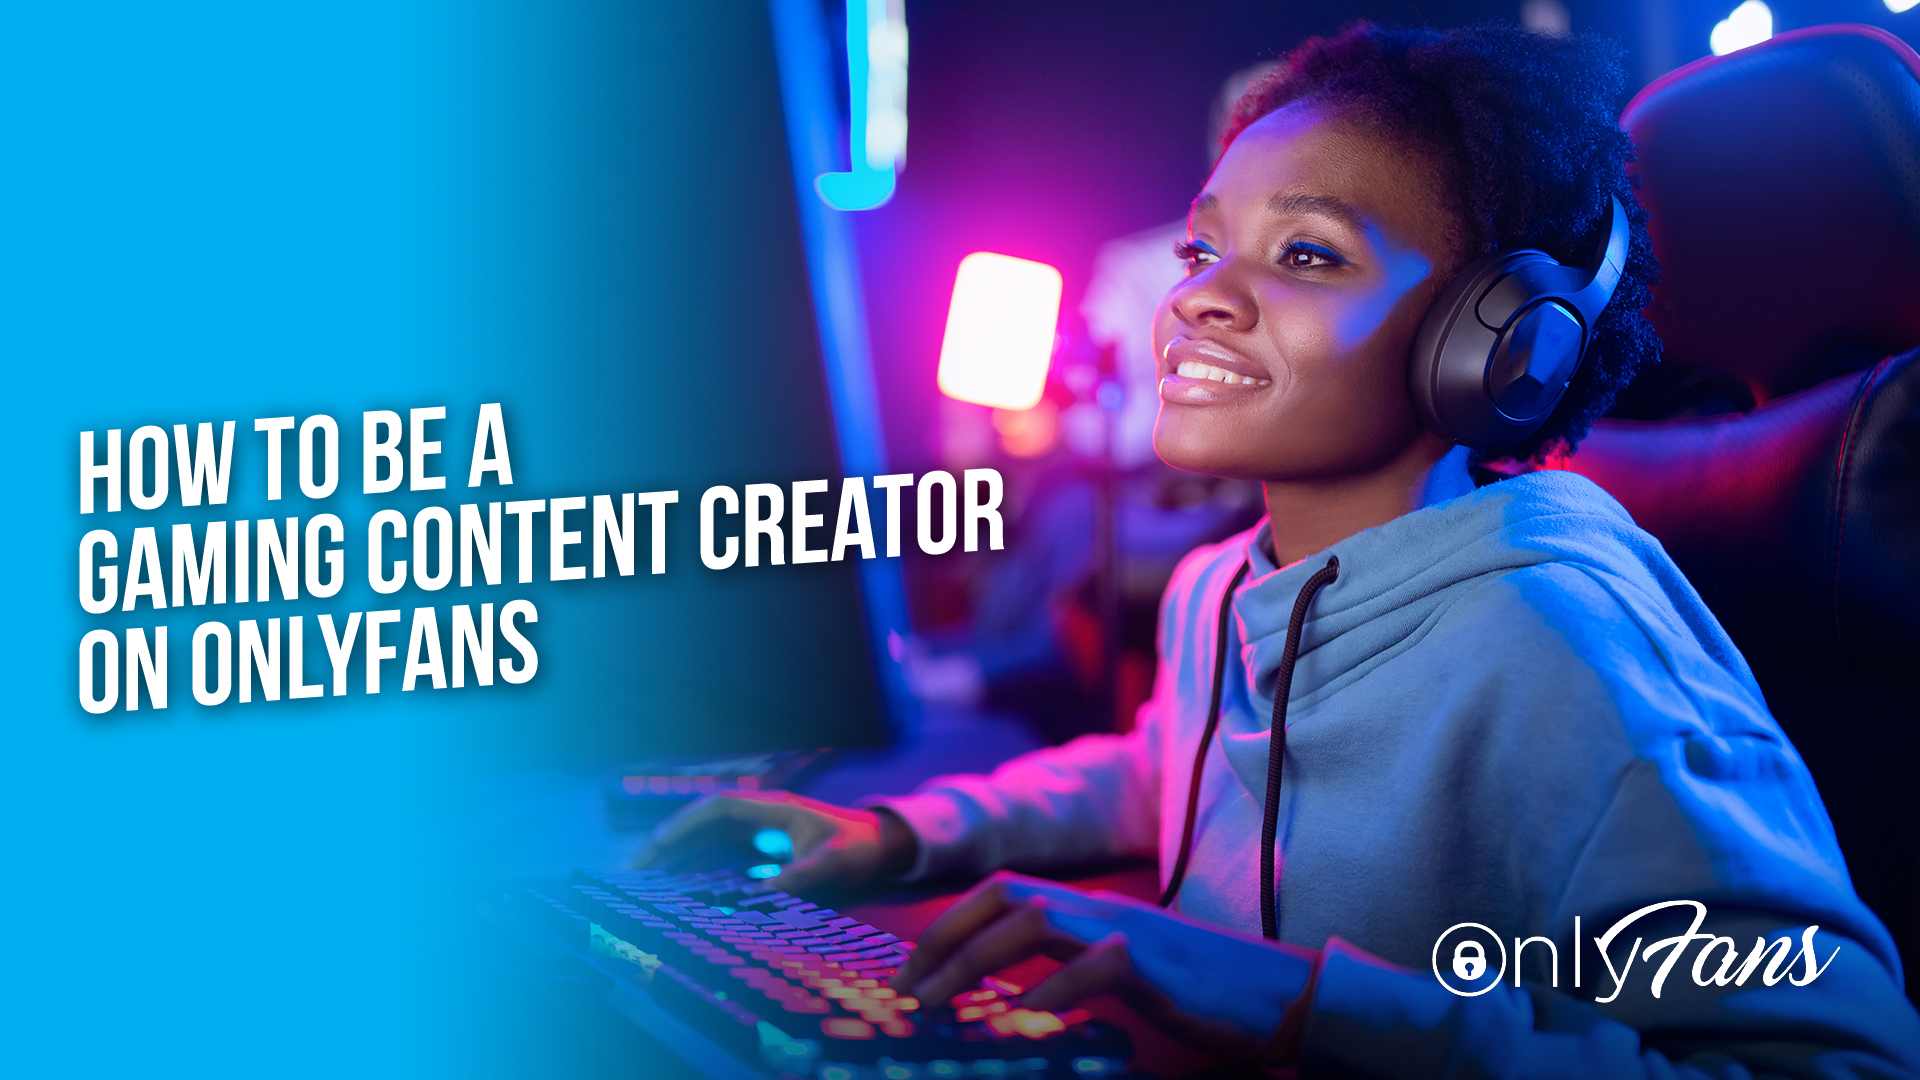 How to be a Gaming Content Creator on OnlyFans